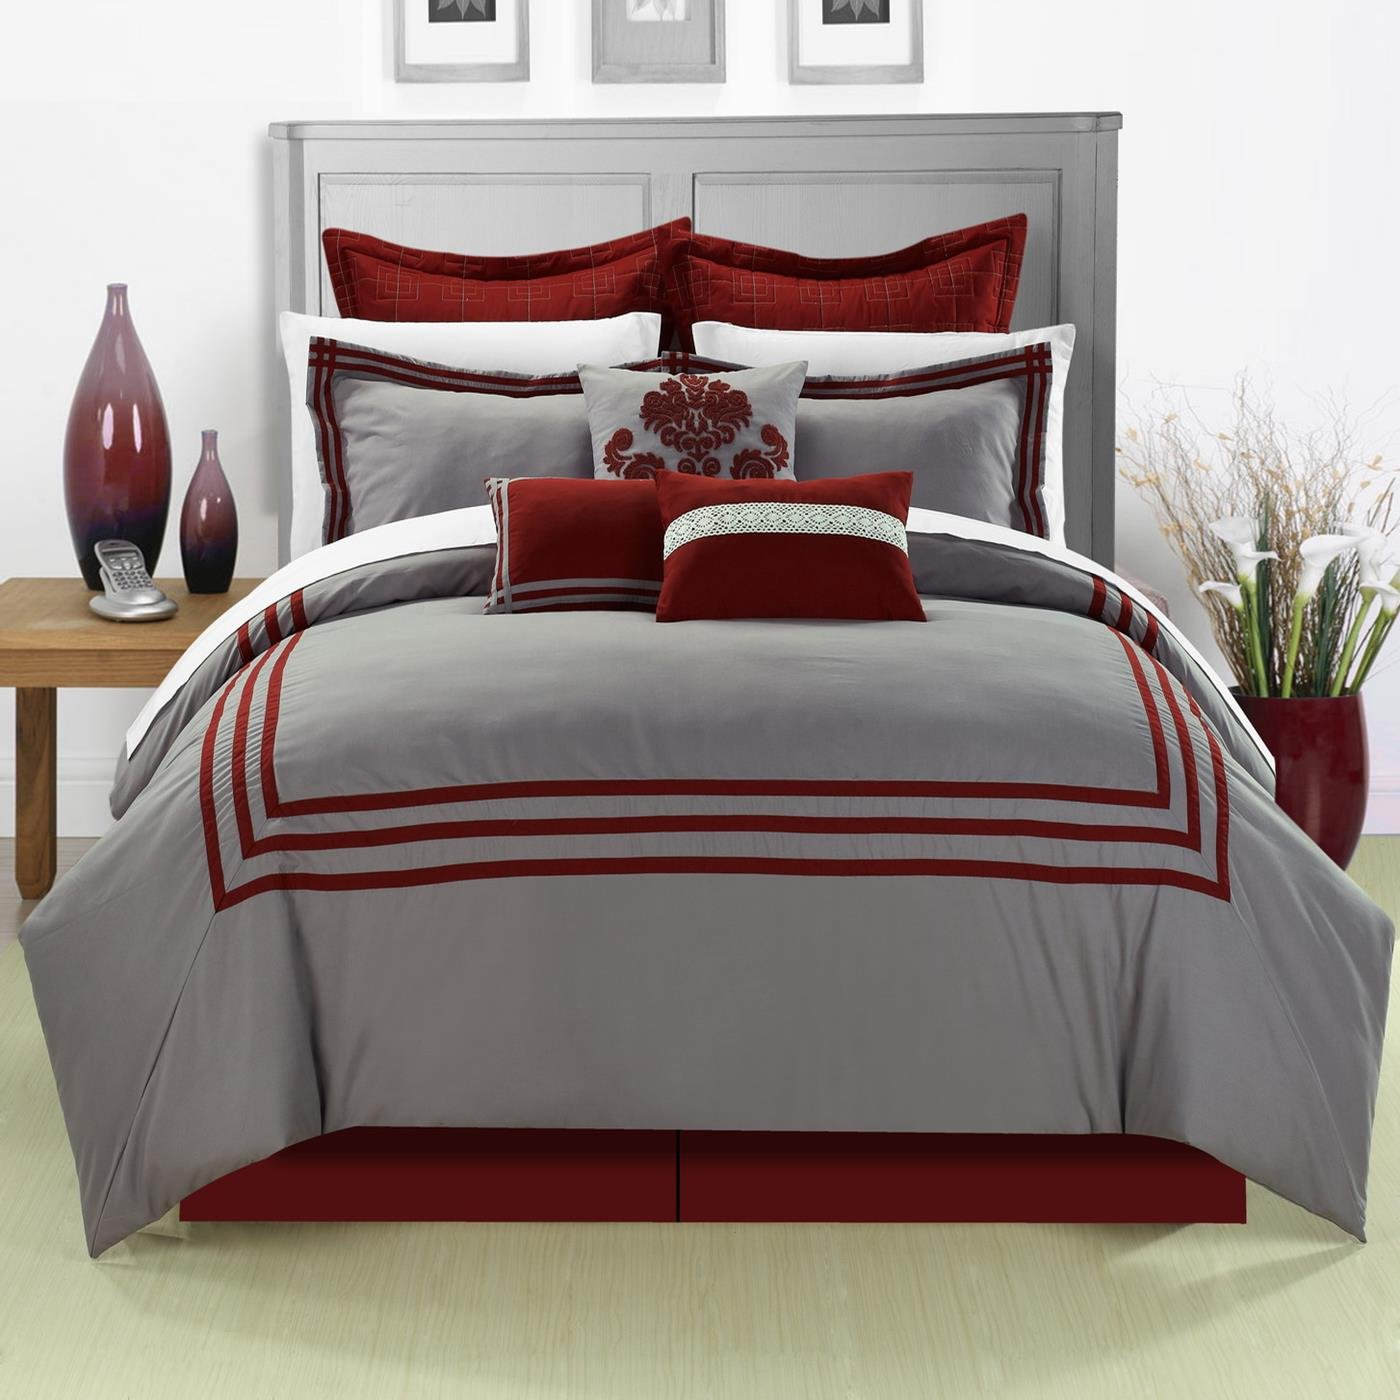 Chic Home 8-Piece Cosmo Embroidered Comforter Set, King, Red